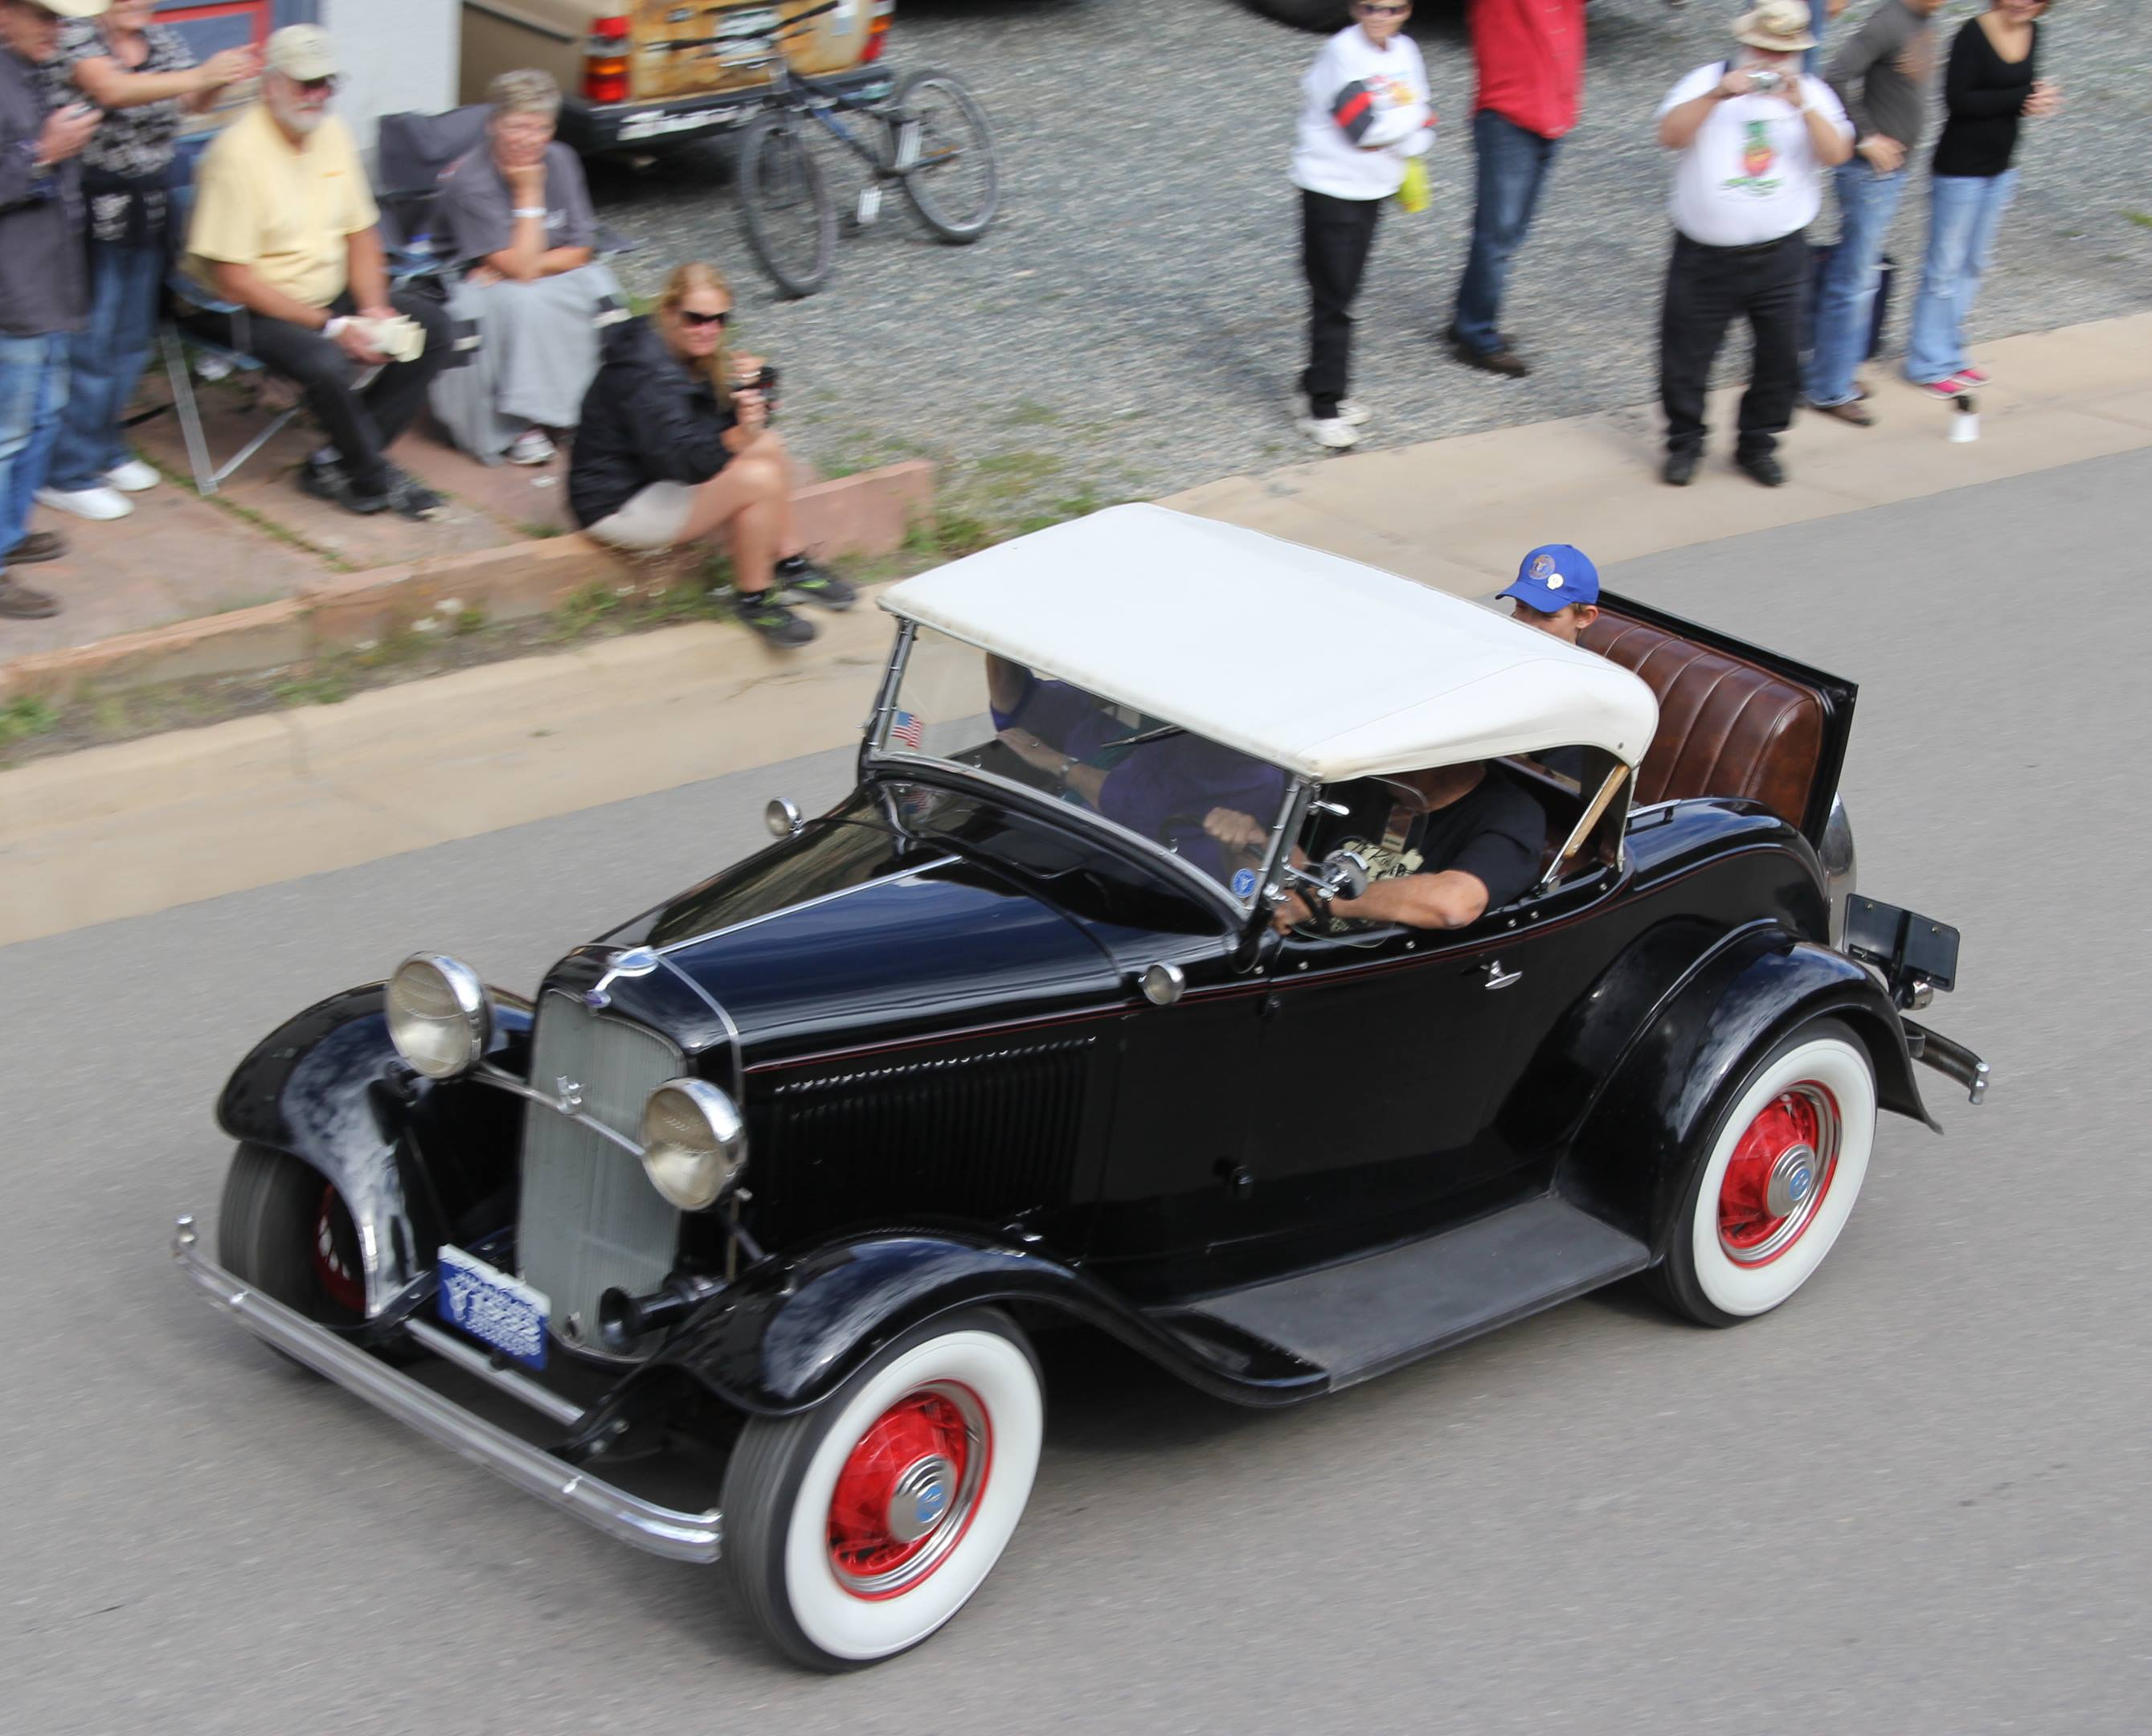 1932 Ford Deuce coupe with a rumble seat